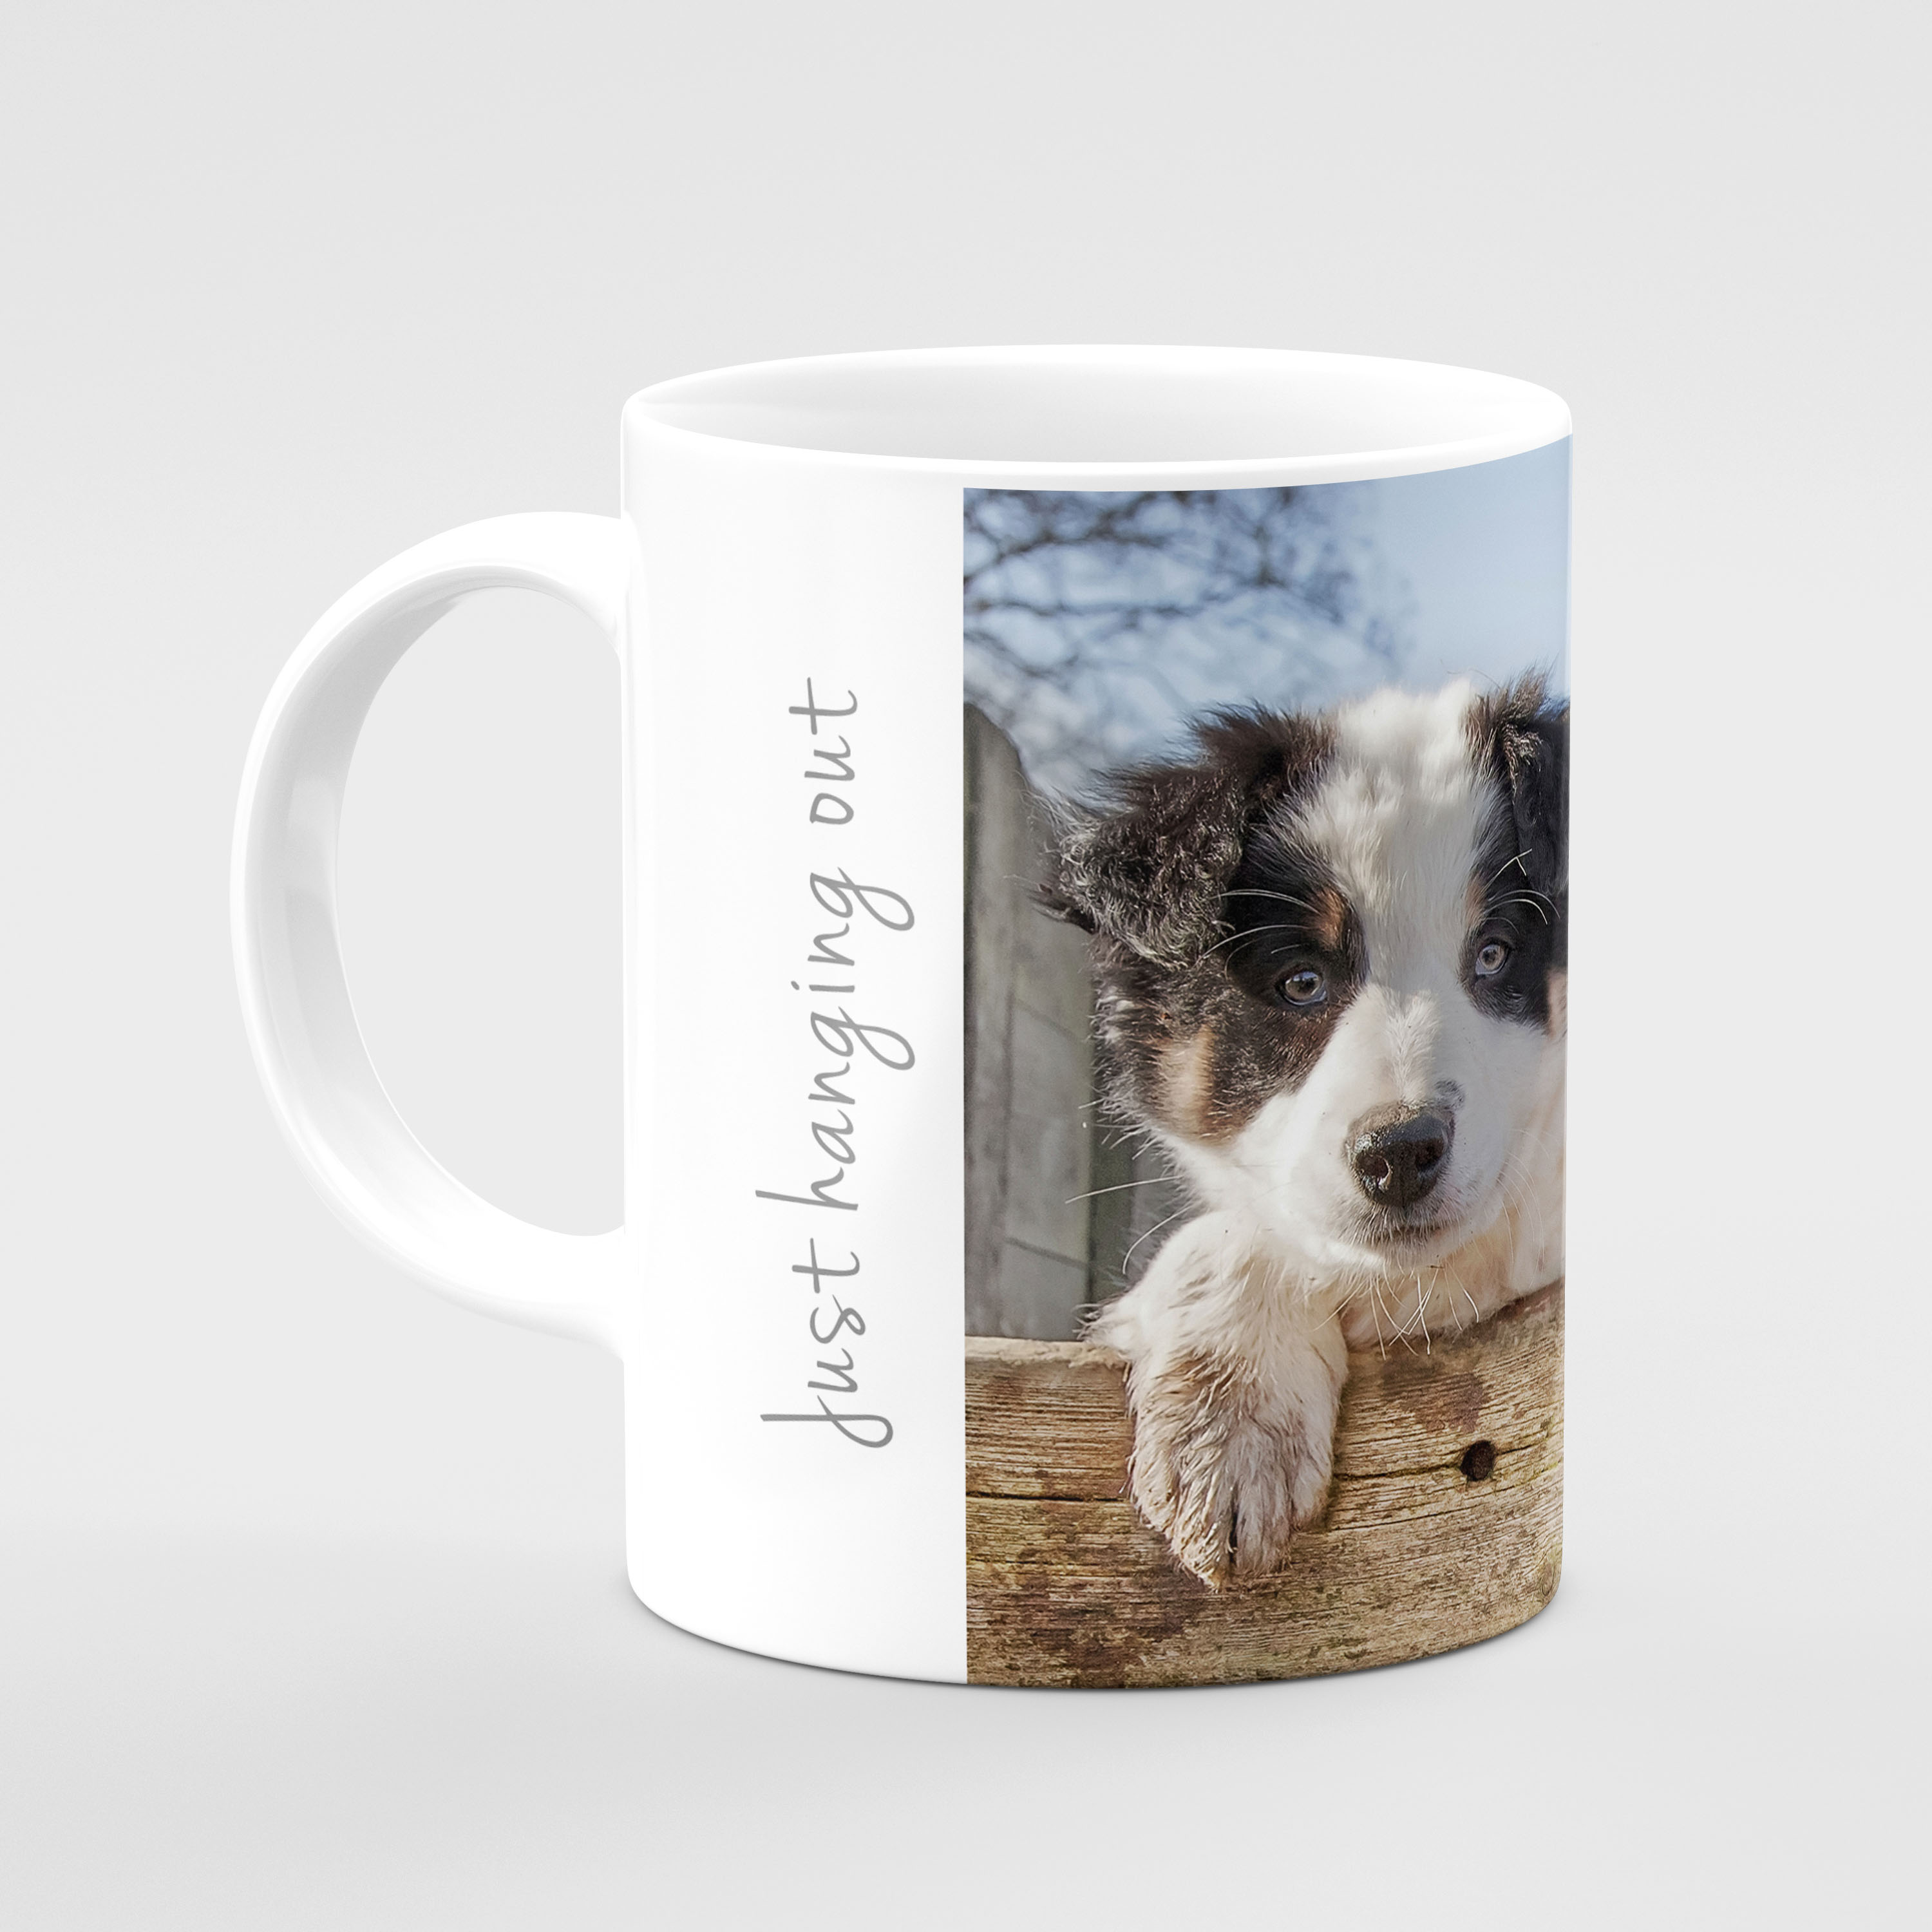 Adorable Border Collie Puppies Glass Drinks Coaster - Kitchy & Co